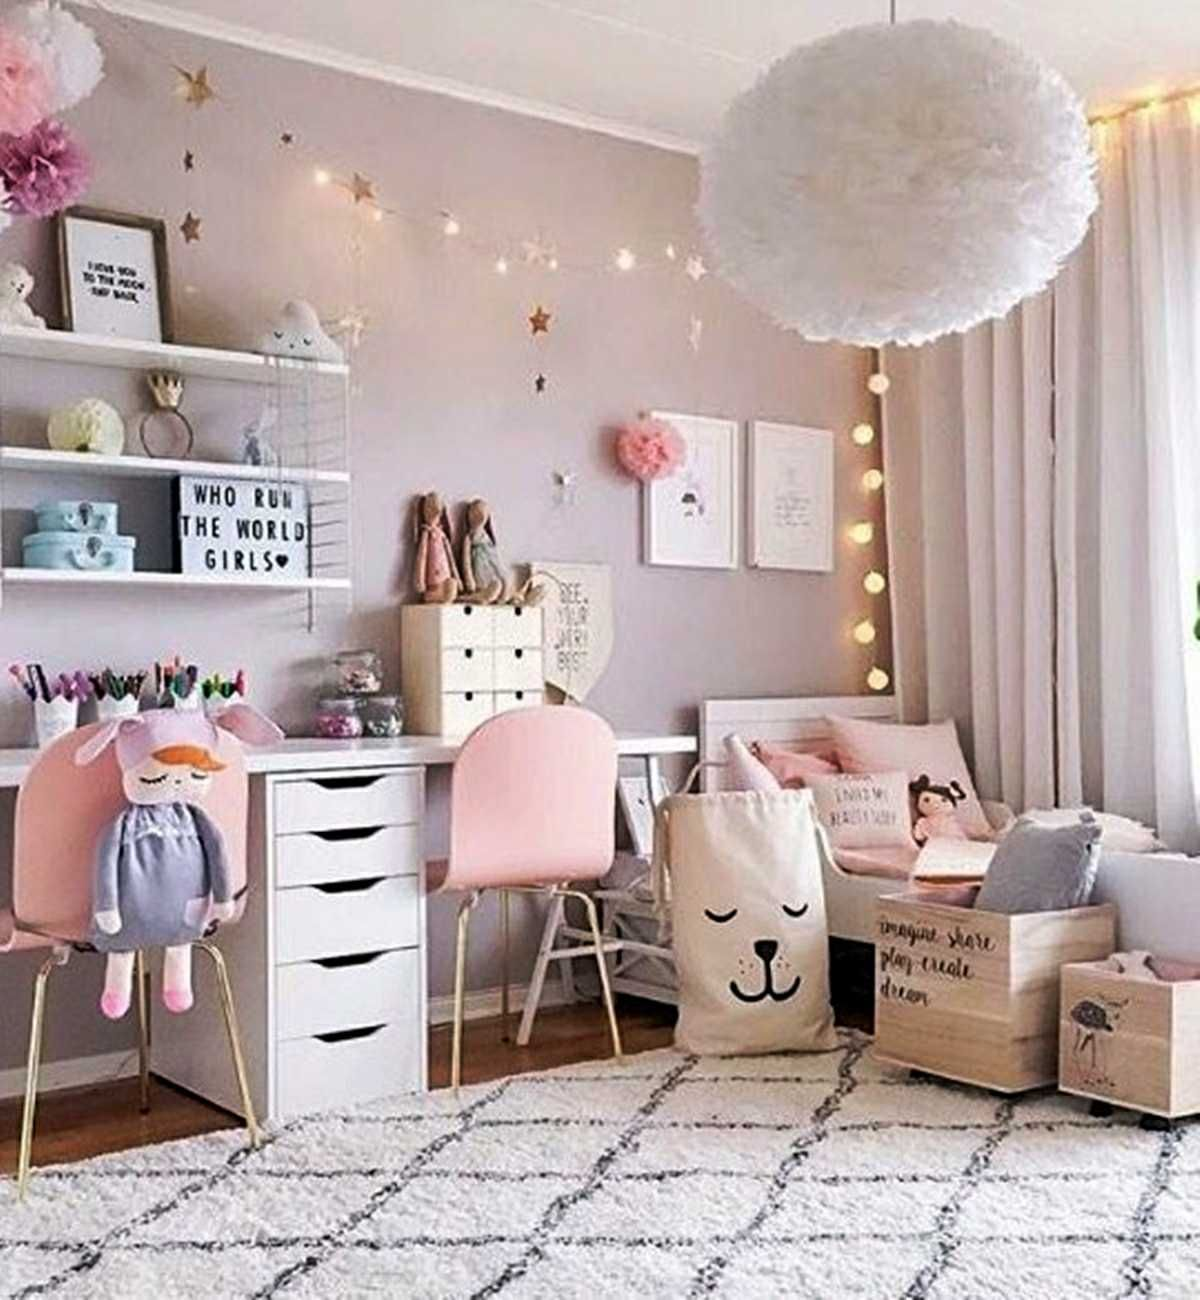 63 Little Girl Bedroom Ideas For Big Decoration Trends 2020